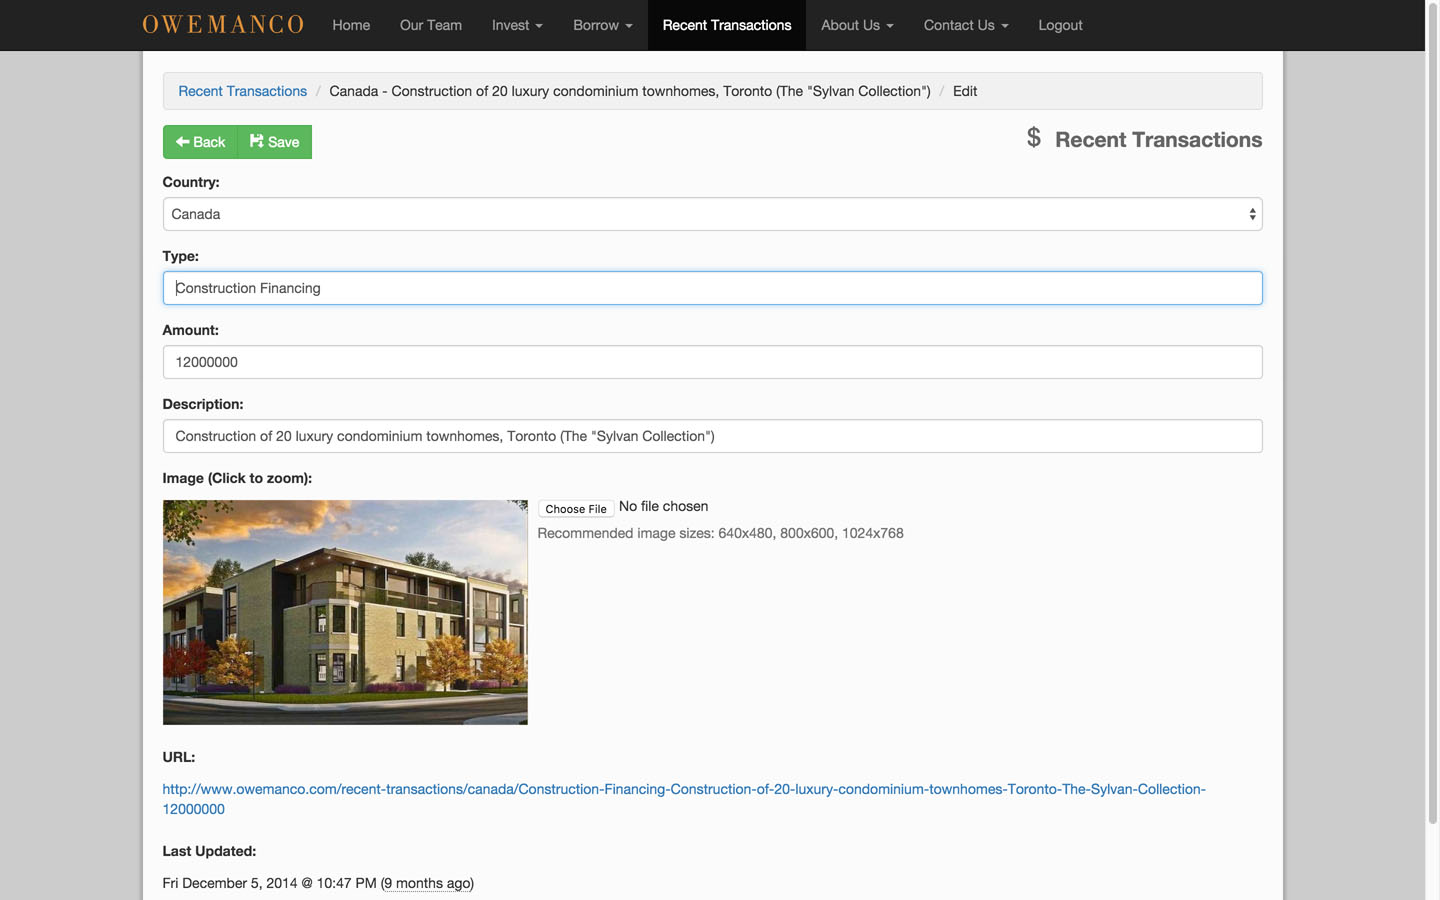 Administration Recent Transactions Edit Page